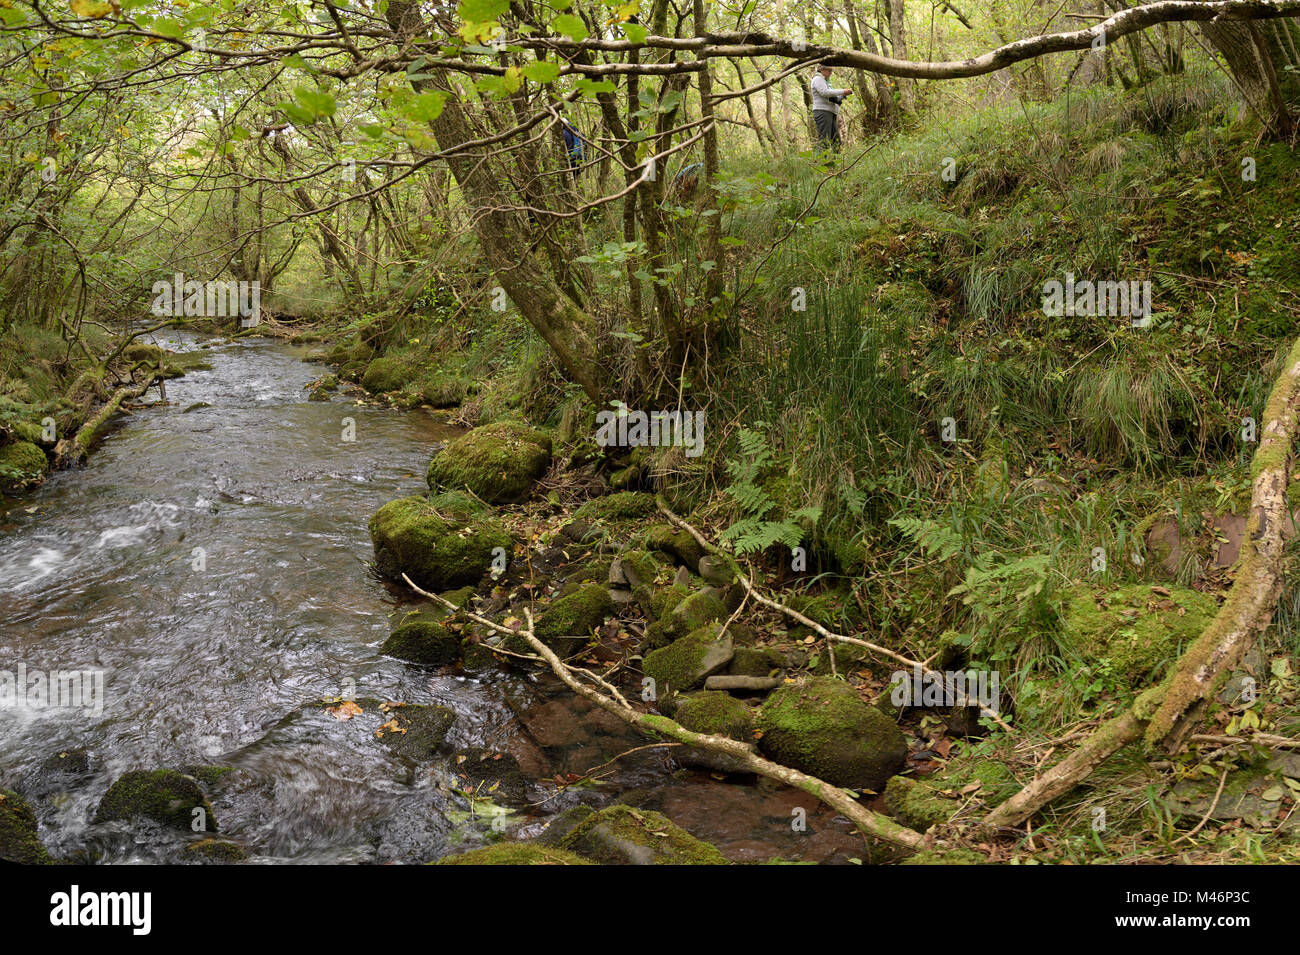 Rough Horsetail, Equisetum hyemale Habitat on the Nant Sere, Brecon Beacons - Stock Image